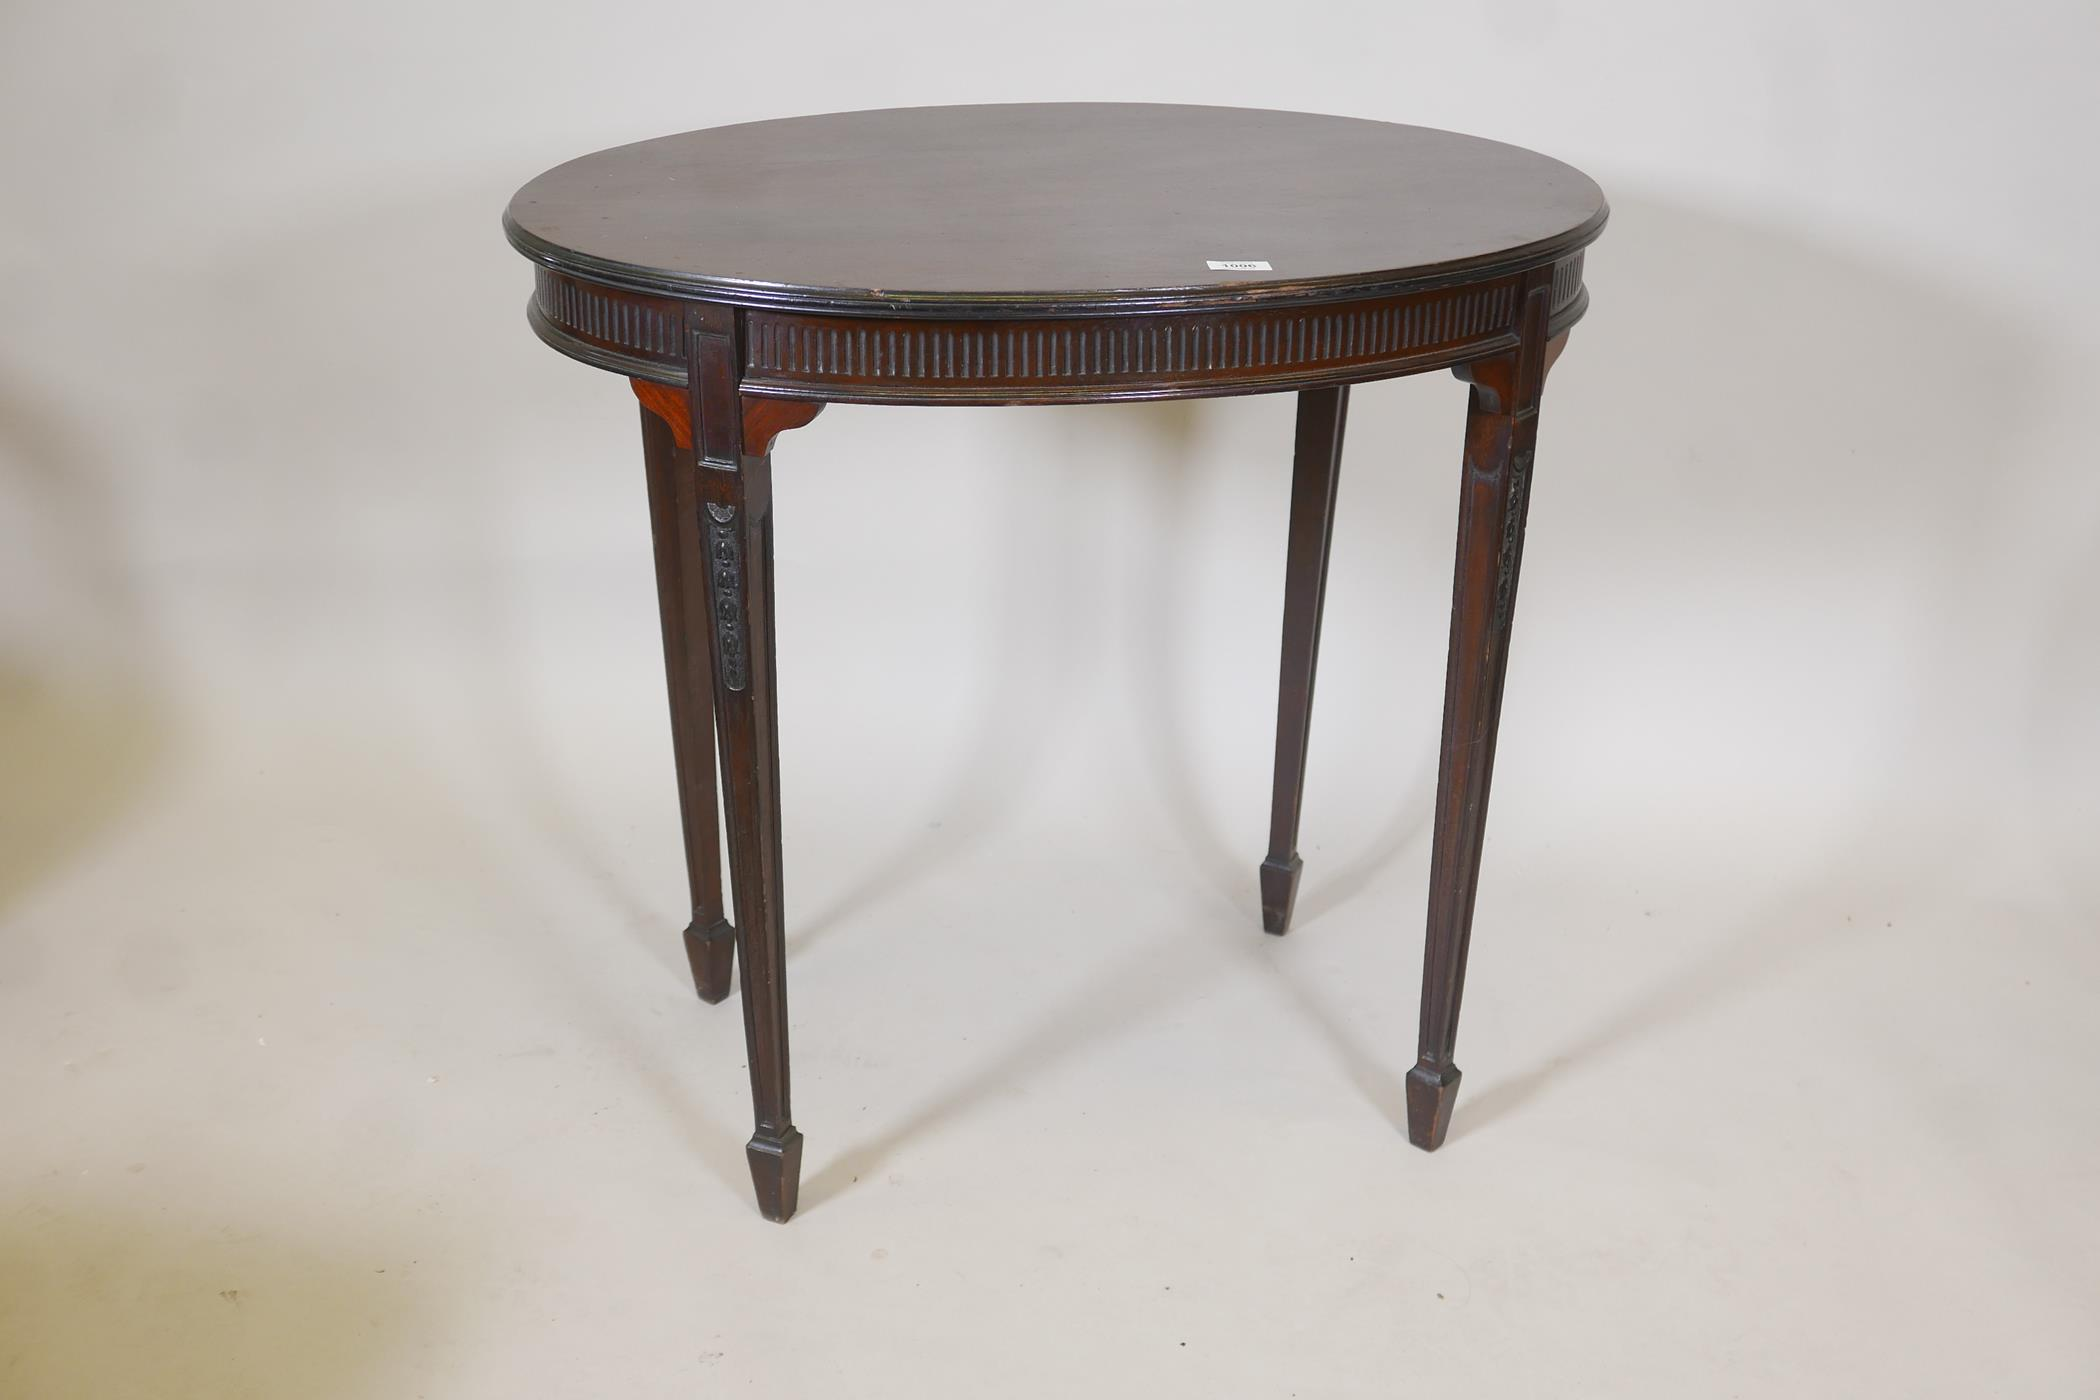 An Edwardian Adam style mahogany oval shaped occasional table, with reeded frieze and carved